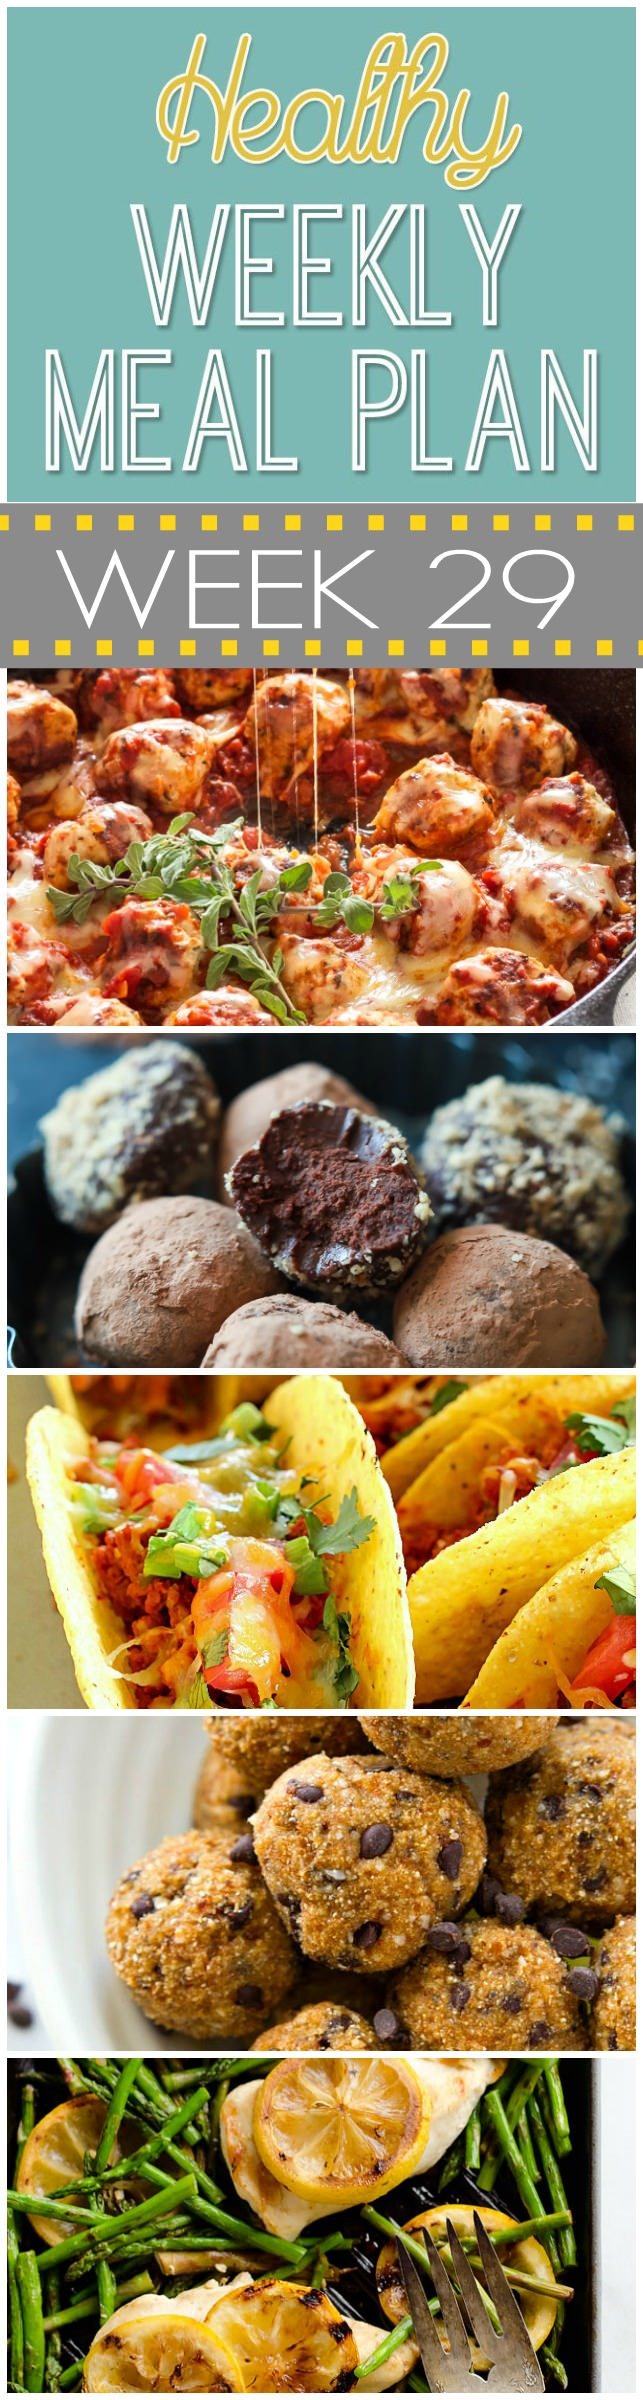 Another awesome menu up for you! We start our week with Garlic Brown Butter Spaghetti Squash - so cheesy and filling! Then to make sure we get our chocolate fix, we have 4 Ingredient Decadent Healthy Chocolate Truffles - perfect way to end any day!